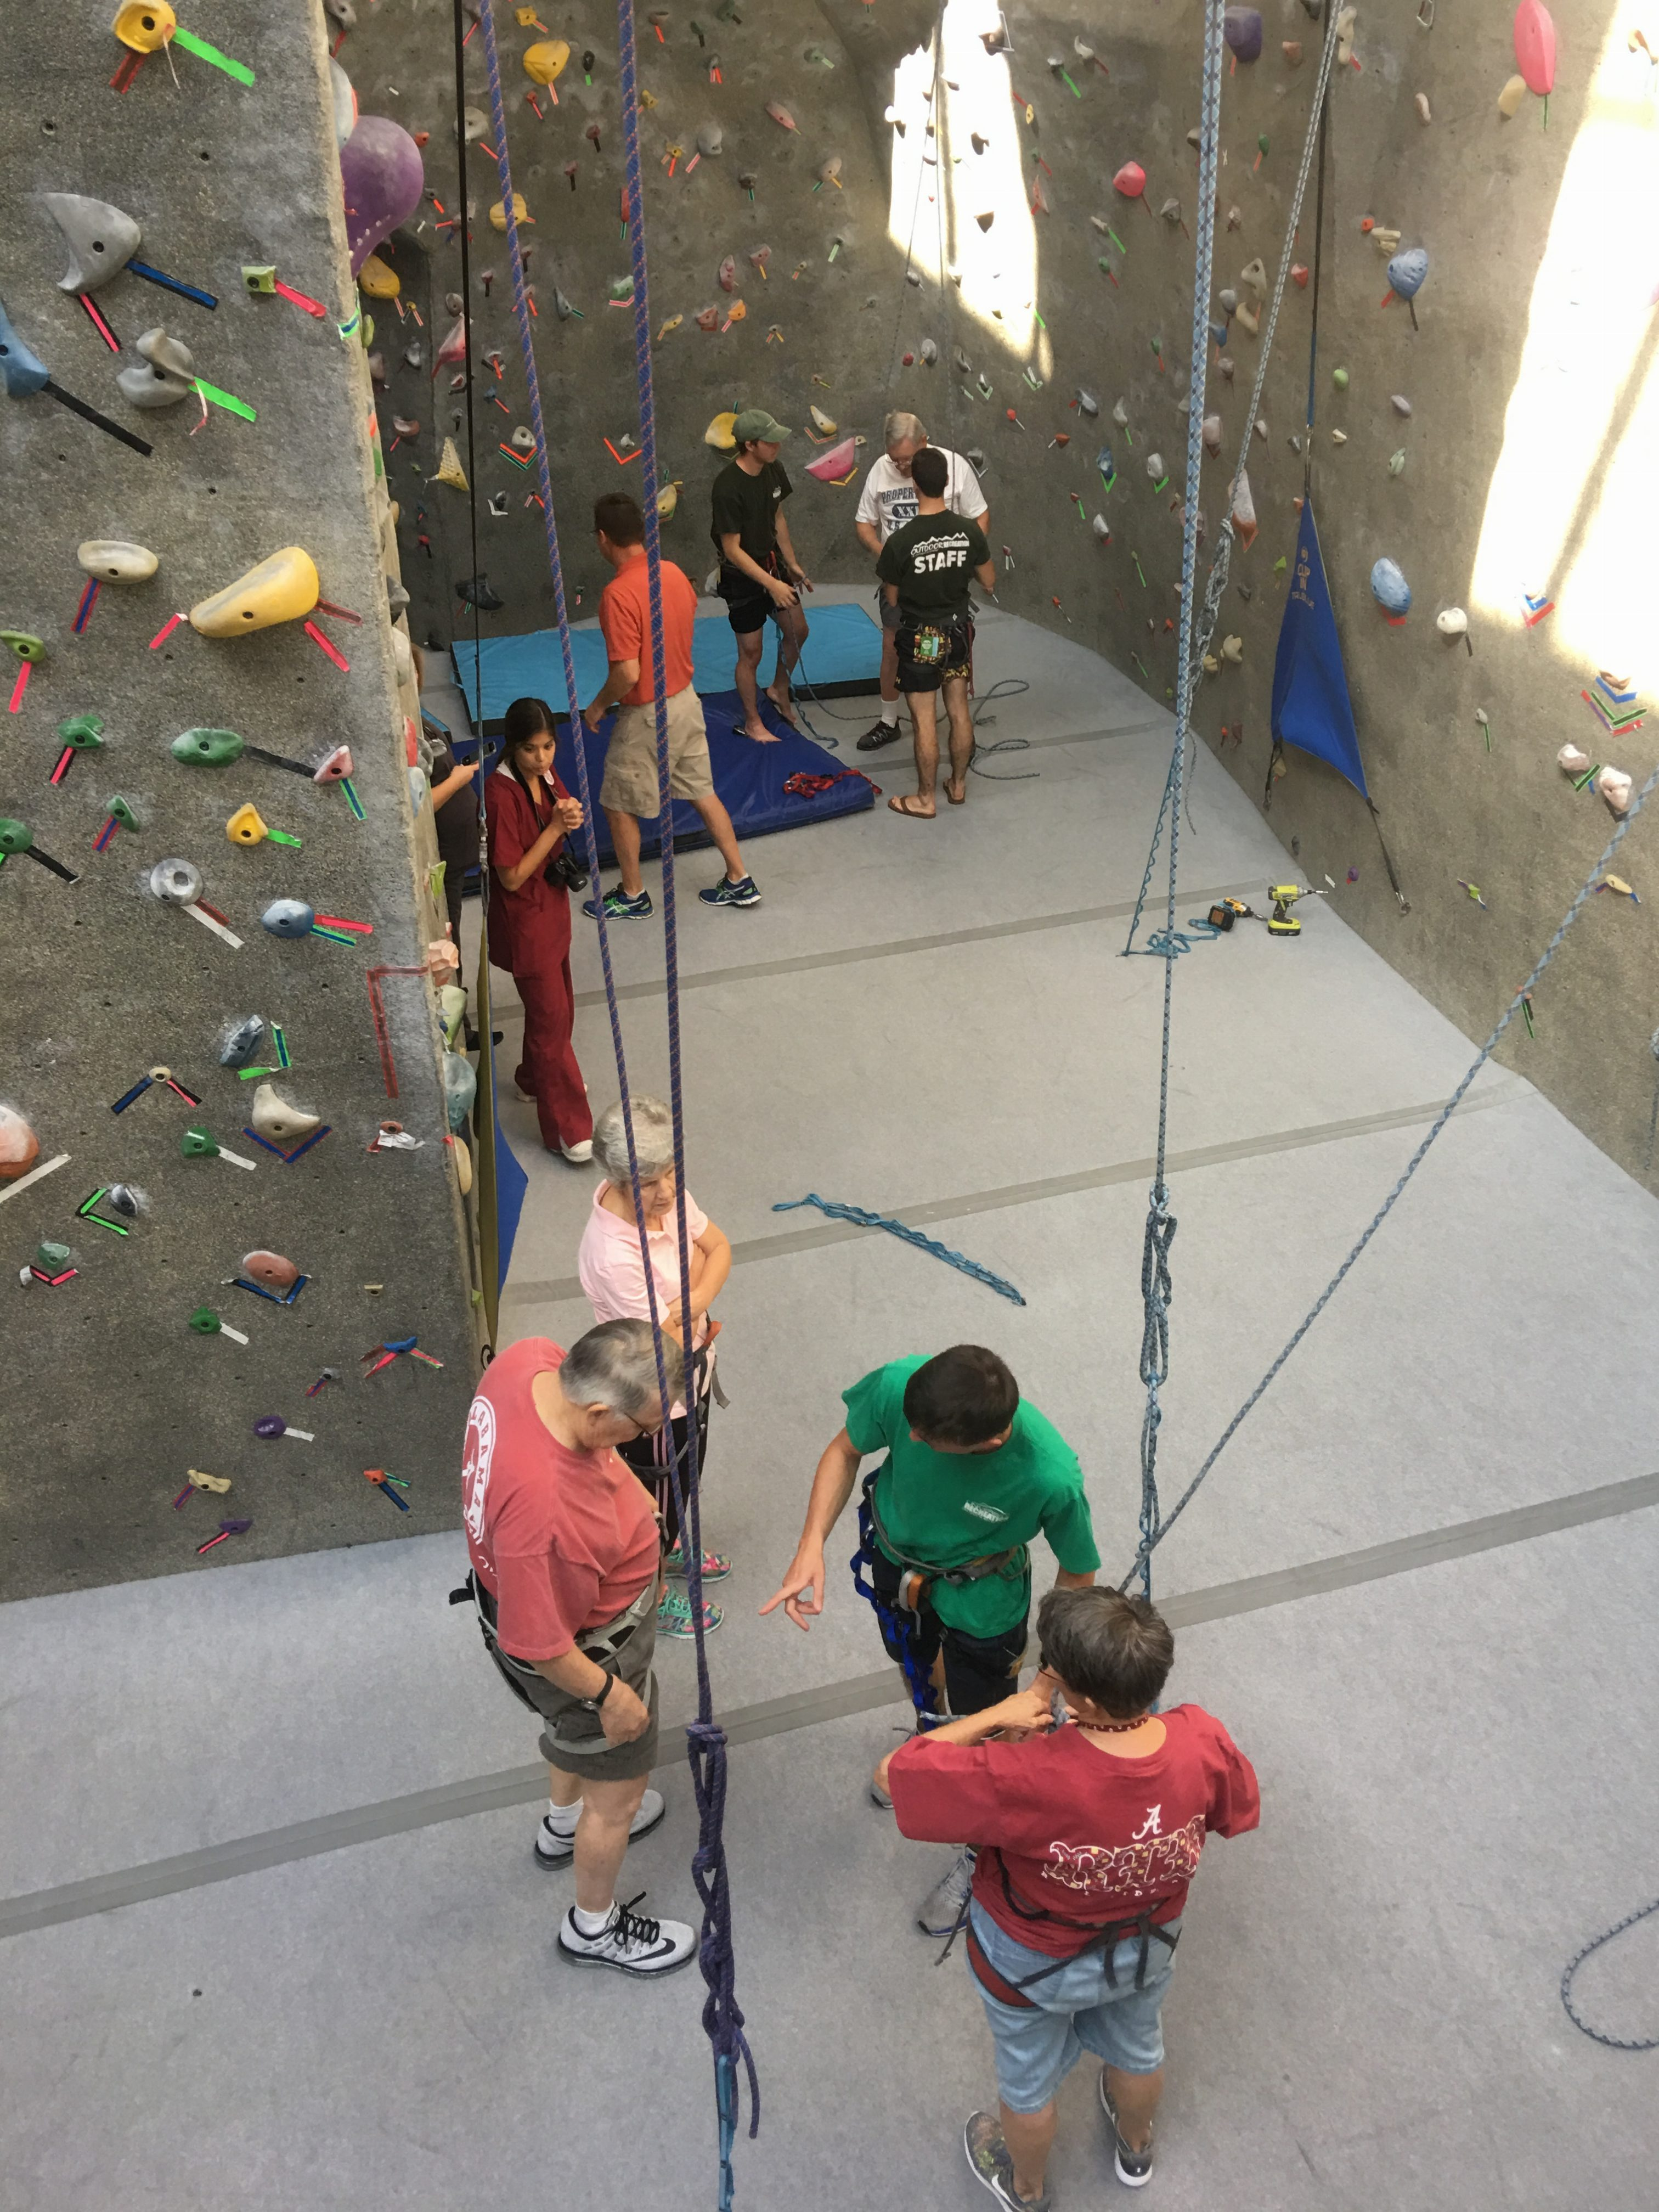 A group of people getting ready to climb an indoor rock wall